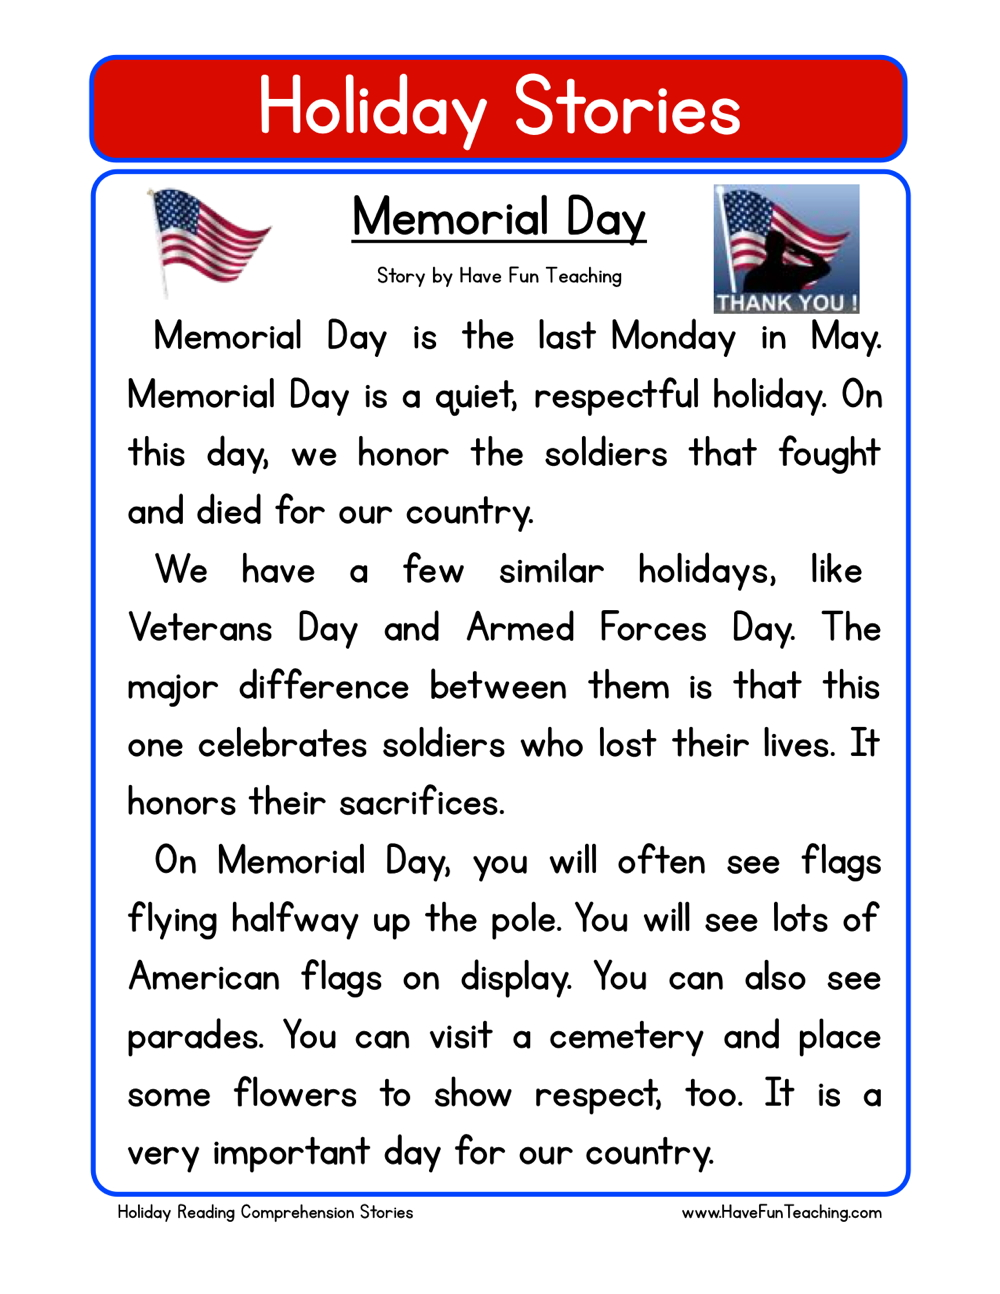 holiday stories comprehension memorial day